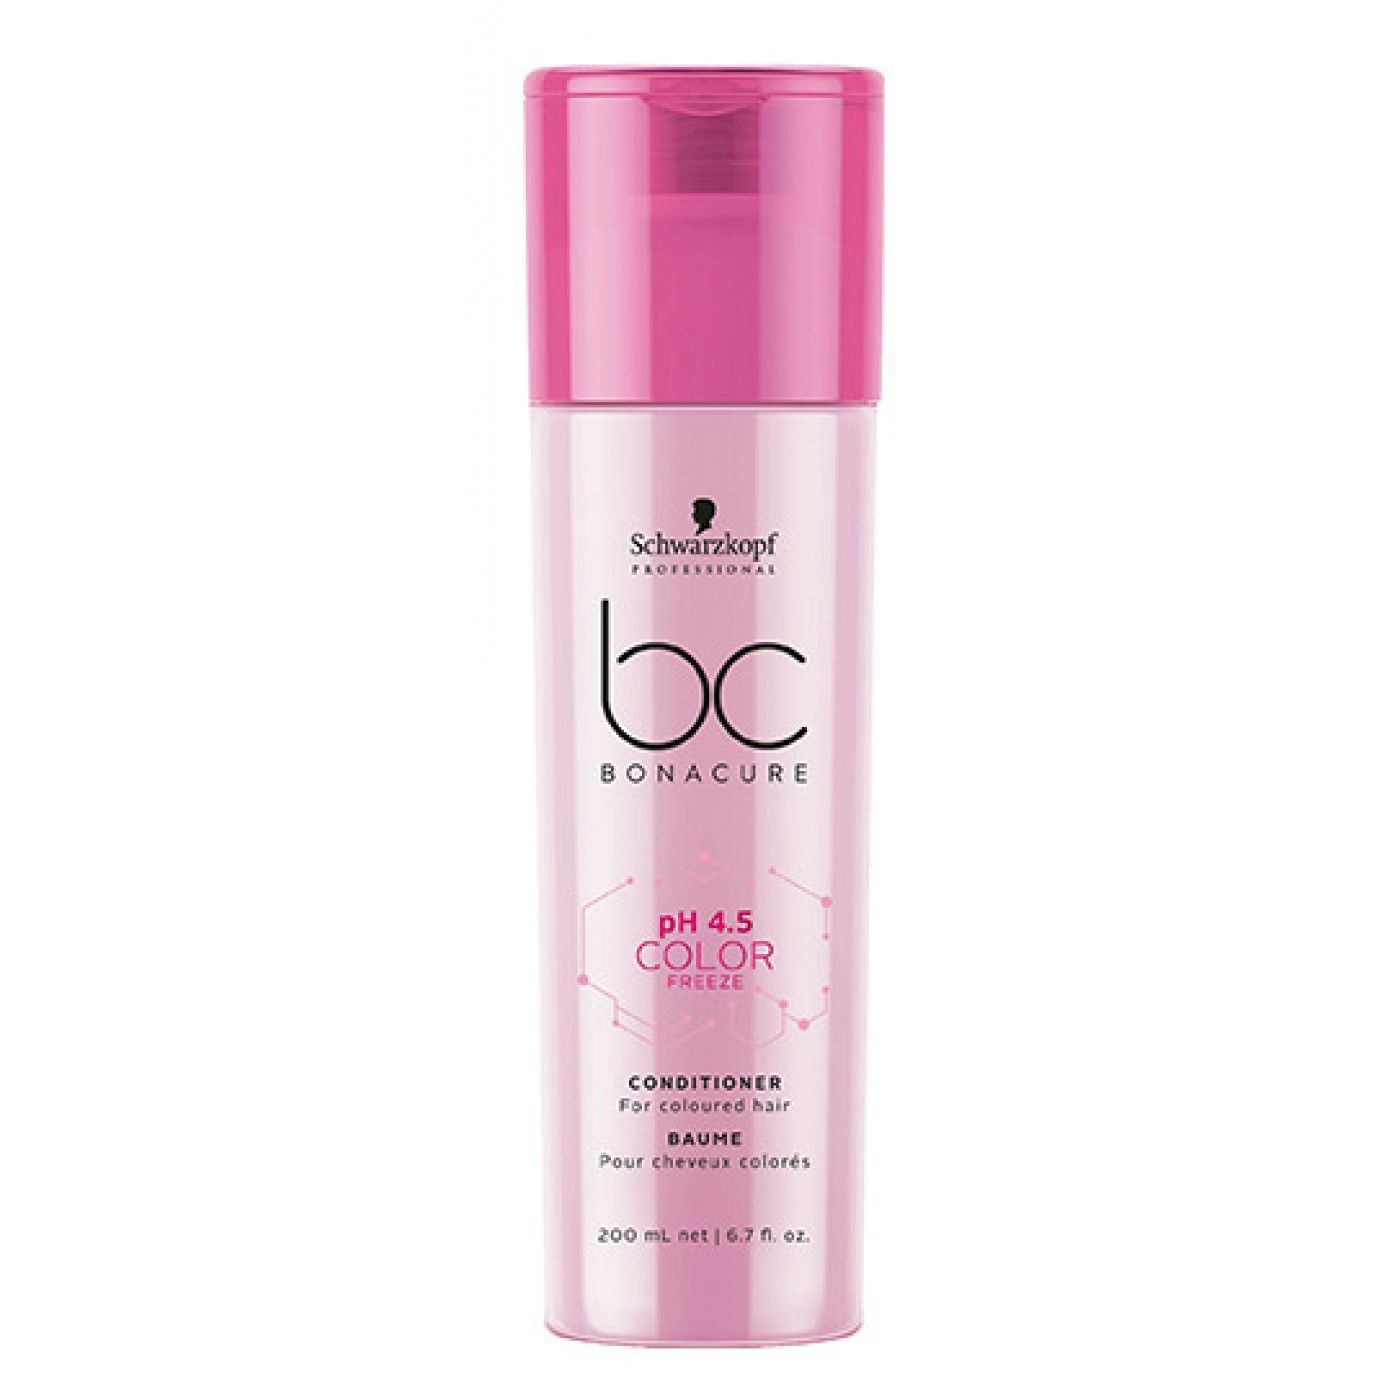 Schwarzkopf Professional BC Bonacure pH 4.5 Color Freeze Conditioner - 200ml